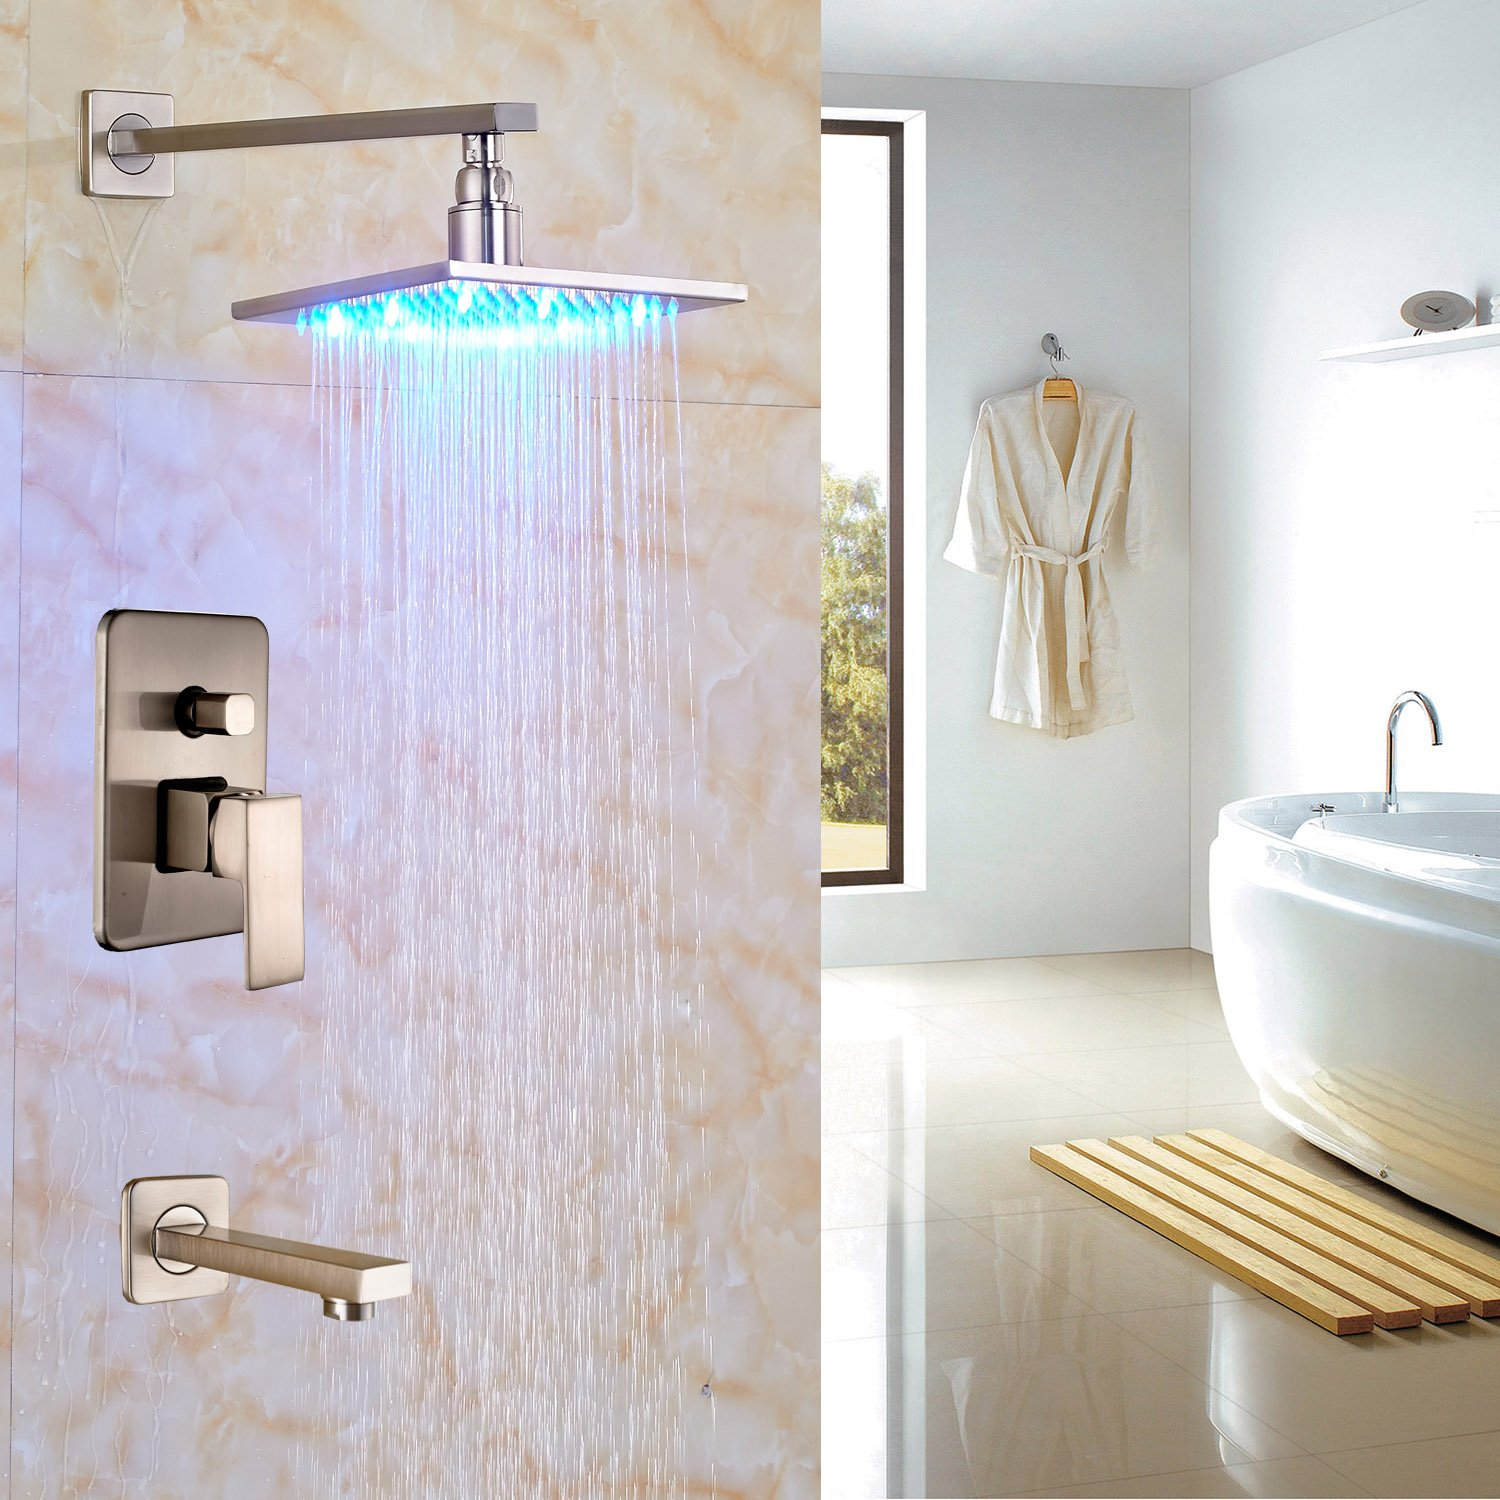 Rozin Bath LED light 8'' Top Rainfall Shower Set with Tub Spout Tap Brushed Nickel